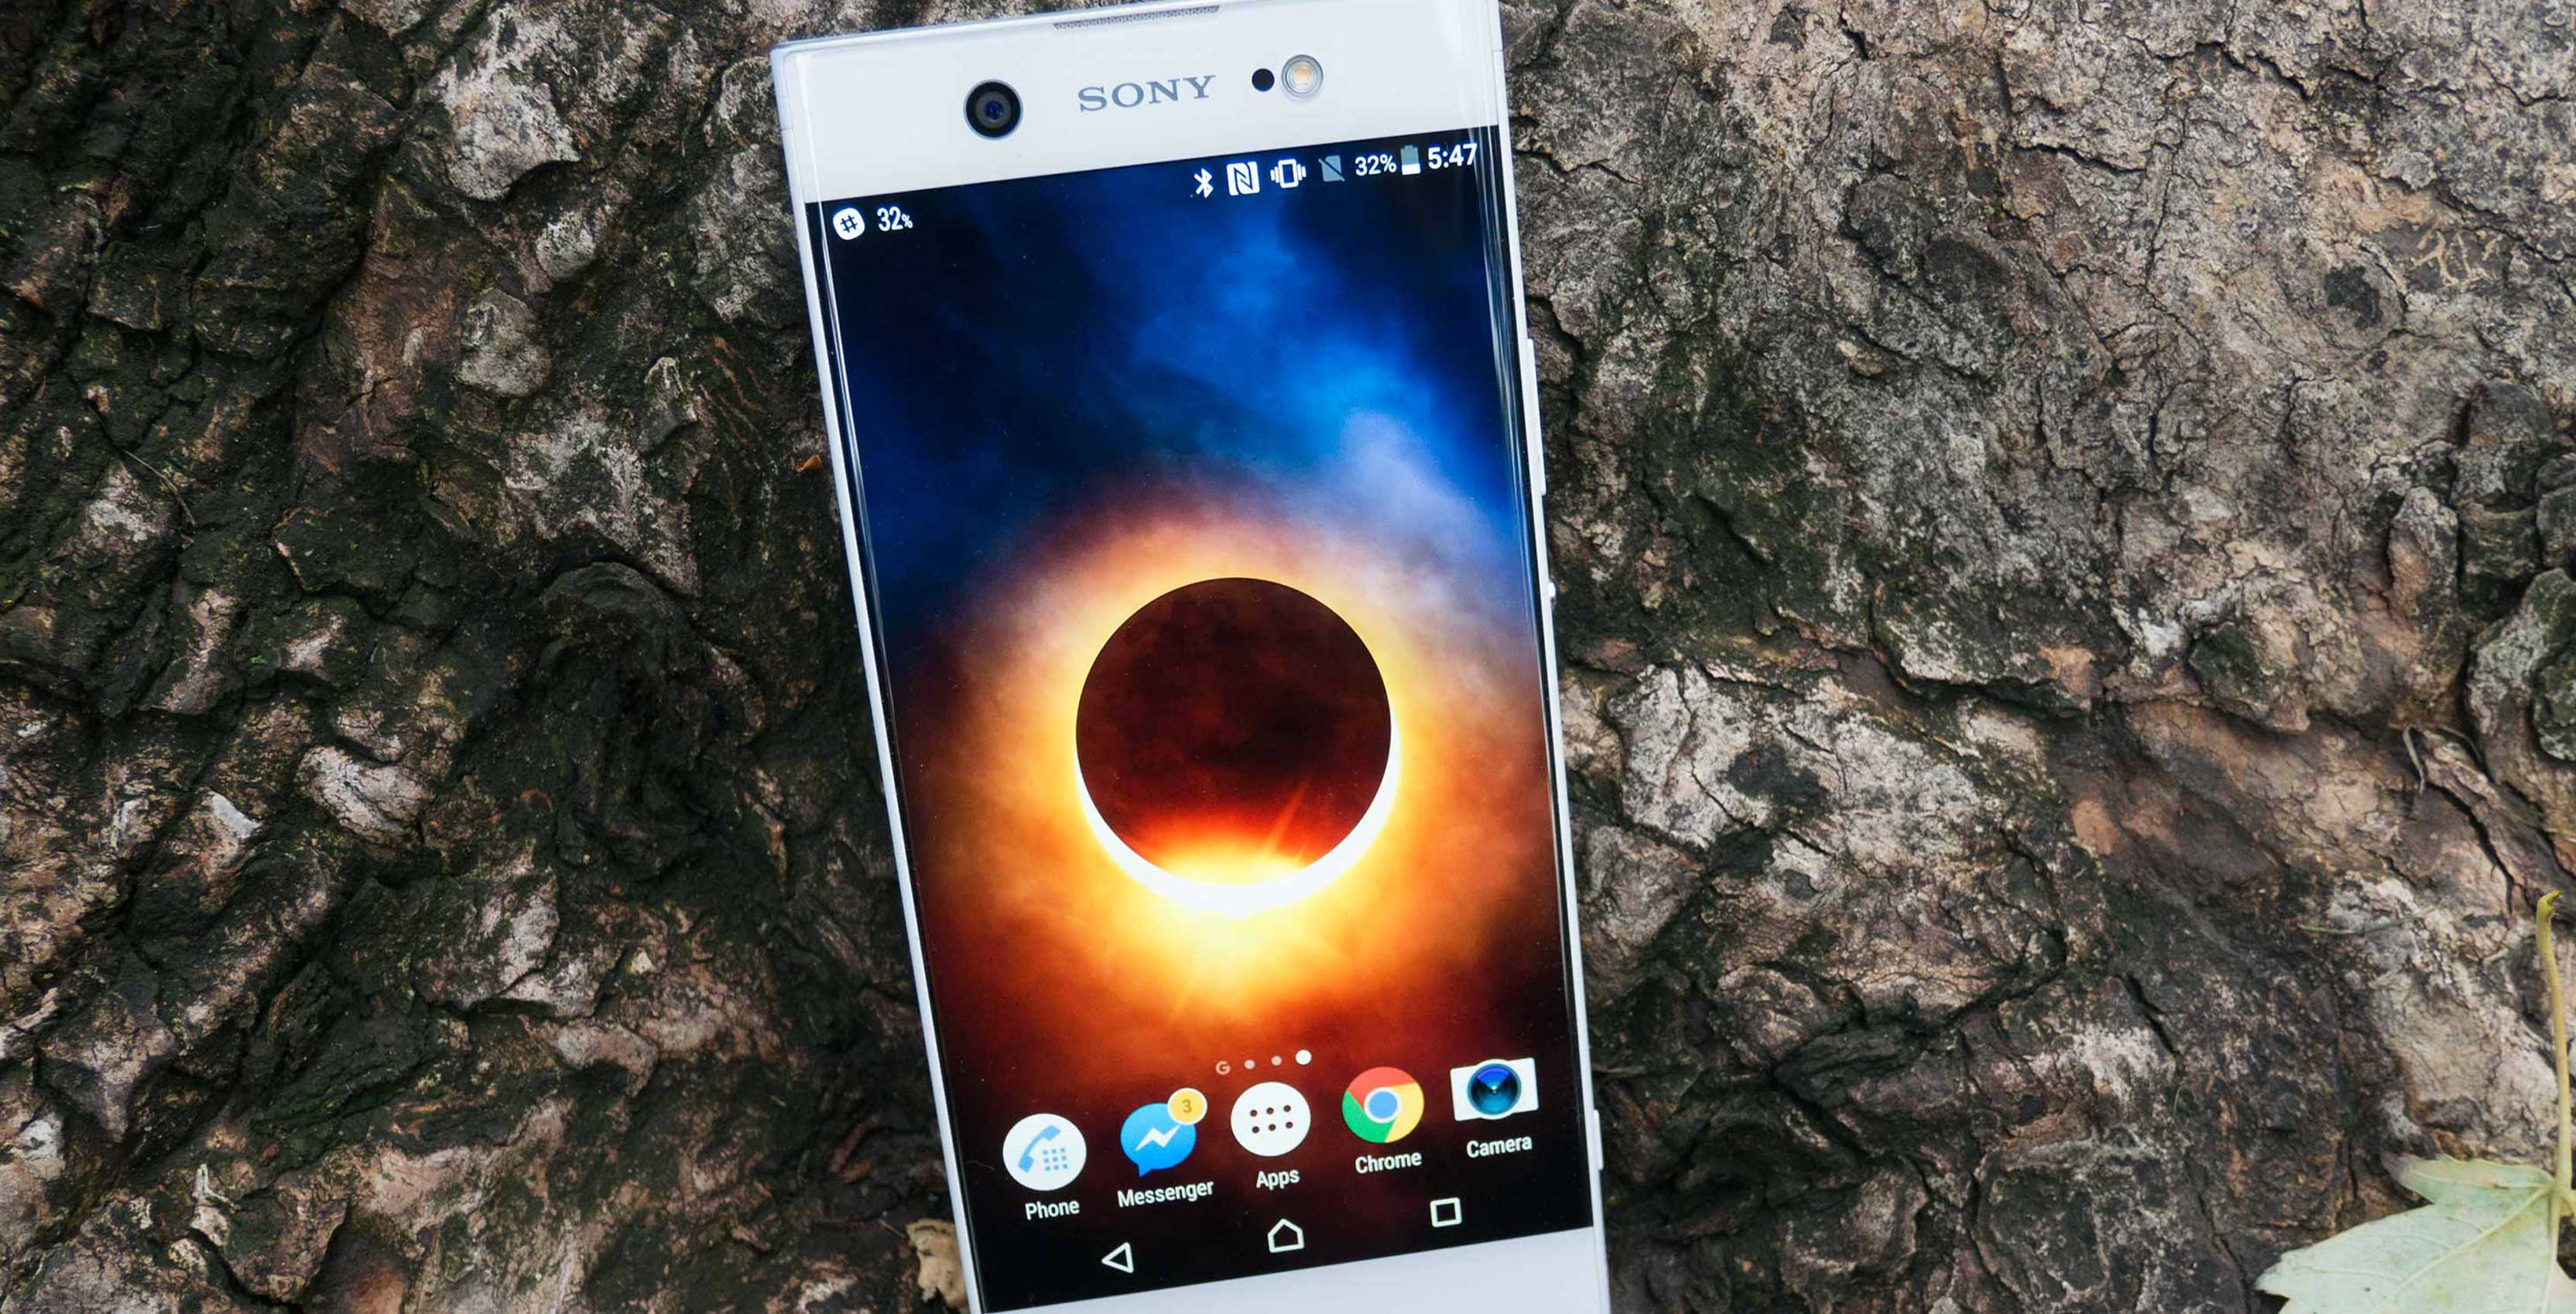 Sony's Xperia XA1 Ultra is a midrange phone with a large